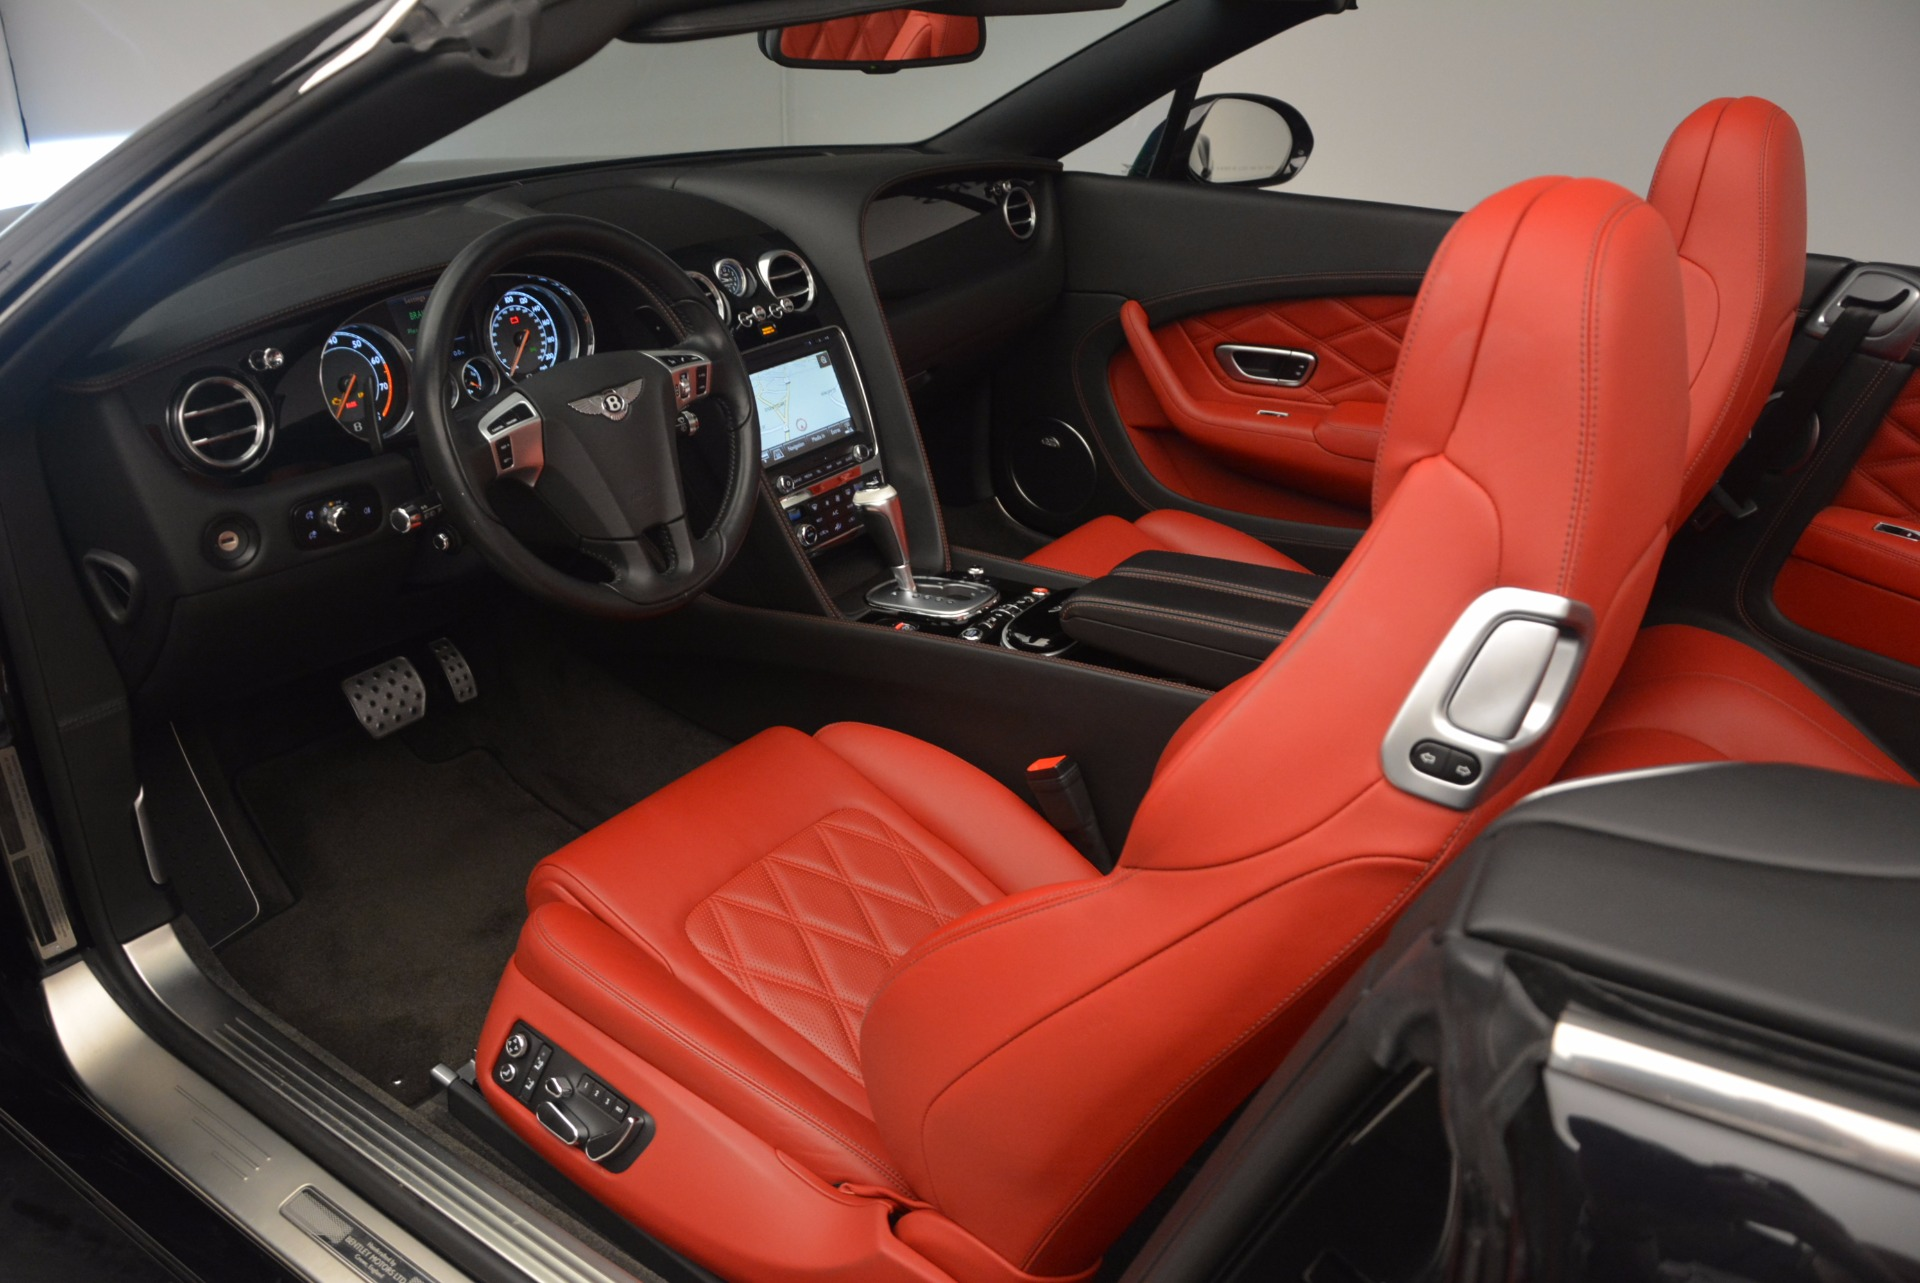 Used 2012 Bentley Continental GT W12 Convertible For Sale In Greenwich, CT. Alfa Romeo of Greenwich, 7188 1104_p35